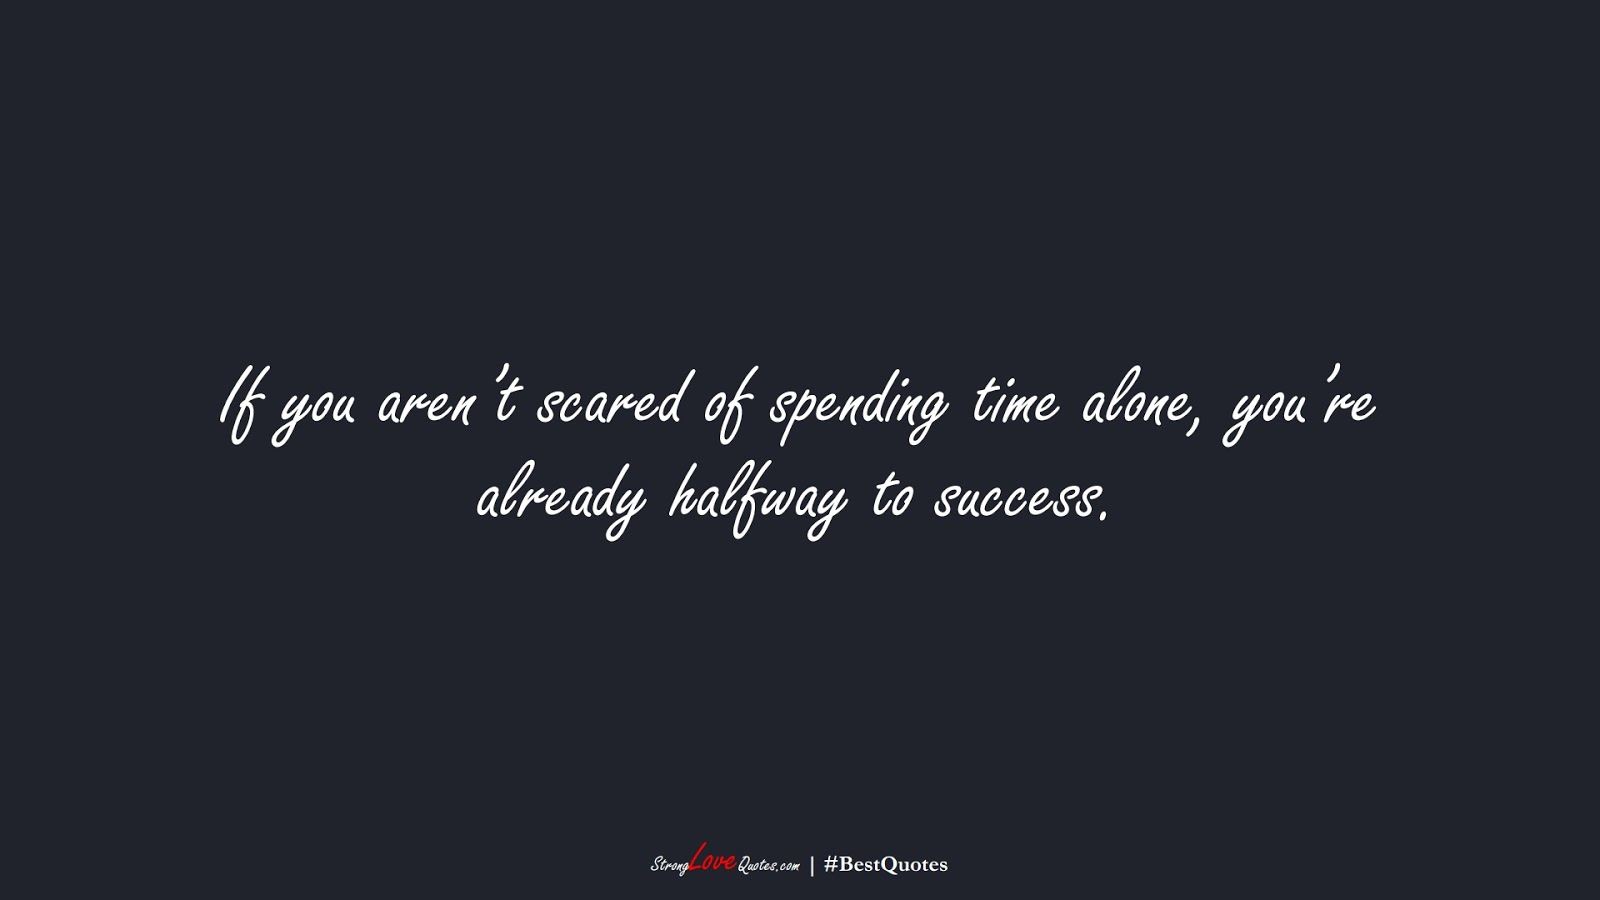 If you aren't scared of spending time alone, you're already halfway to success.FALSE